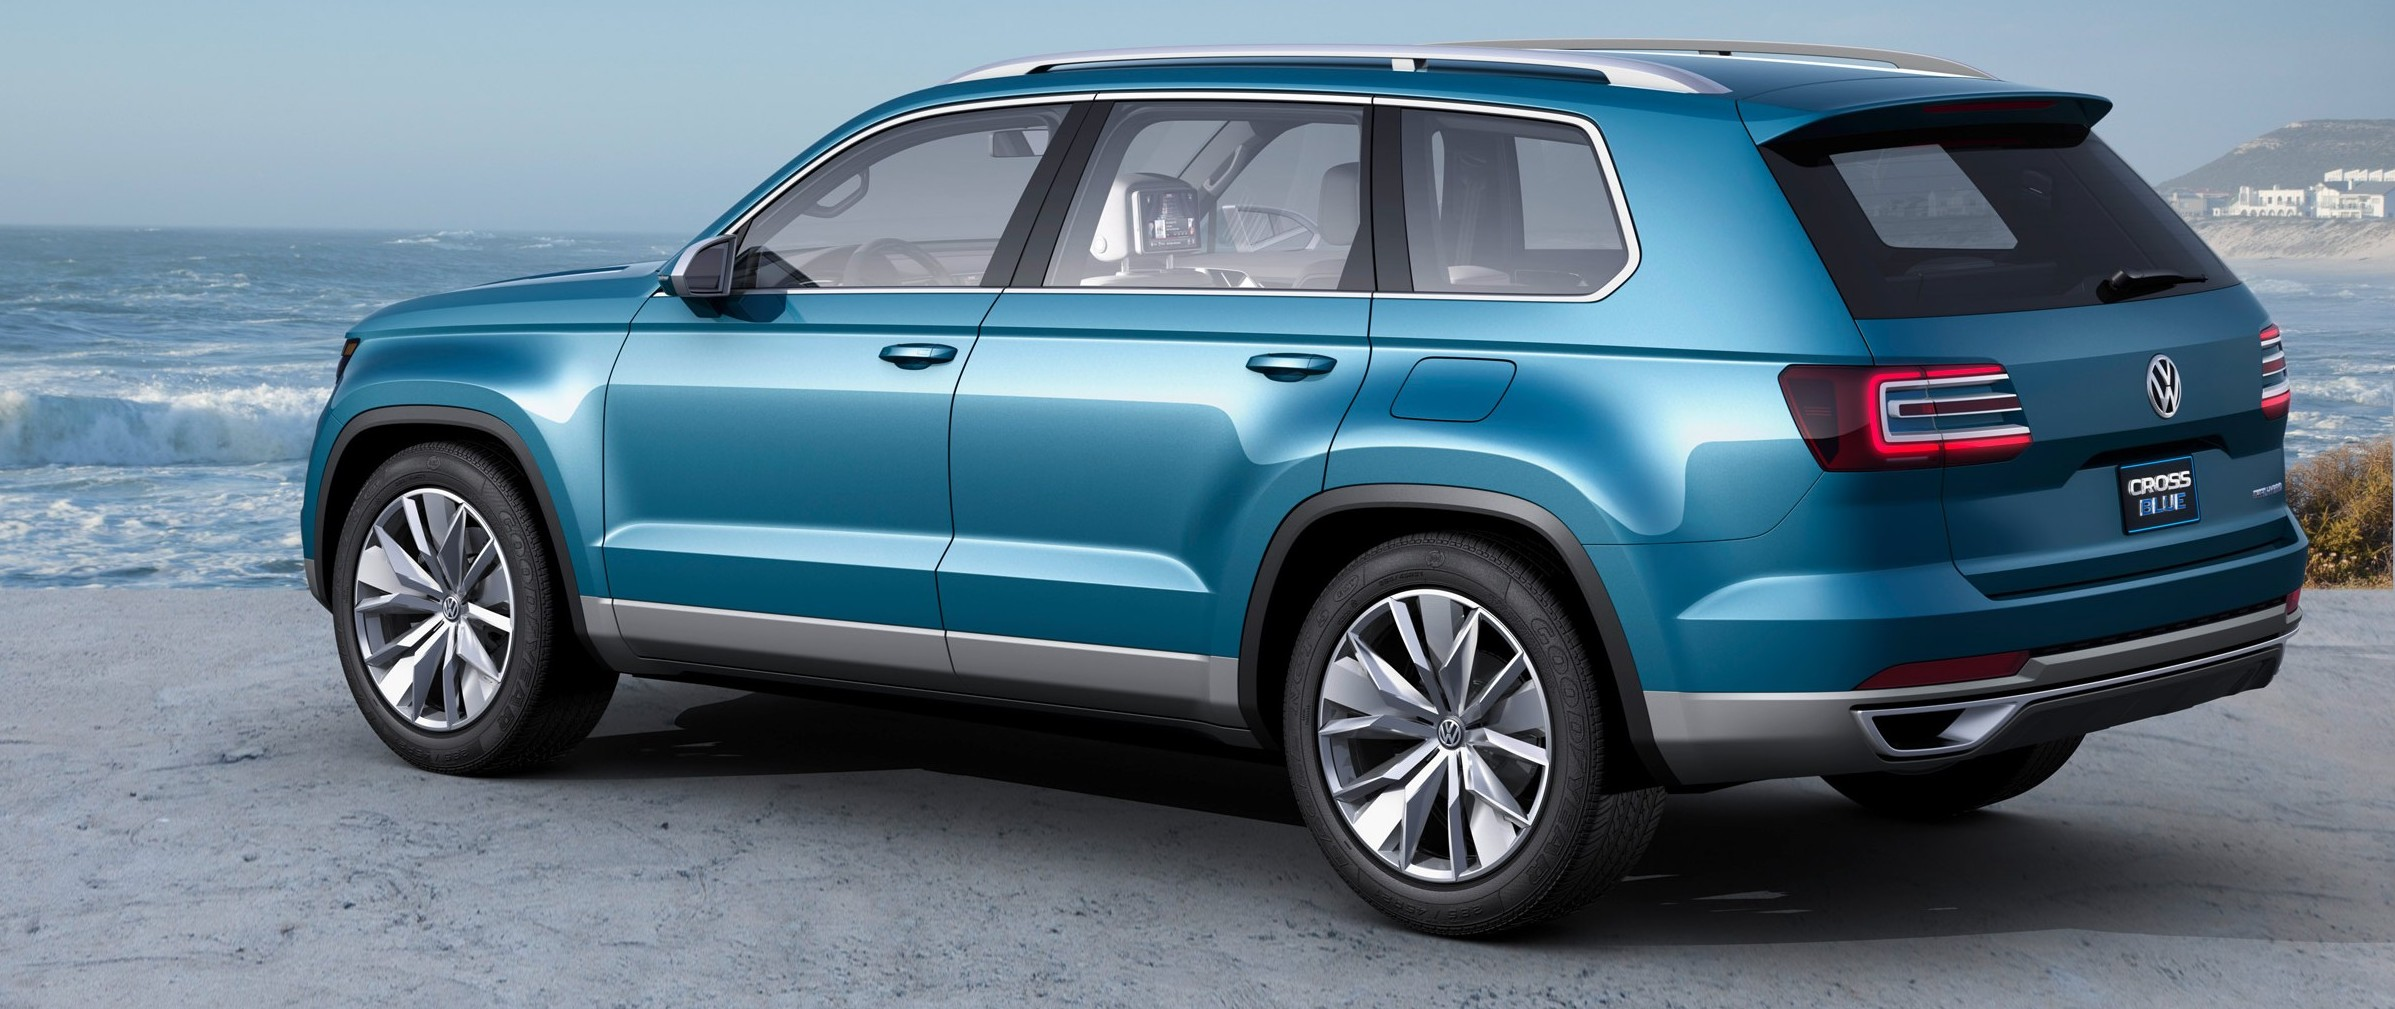 volkswagen-cross-blue-concept-6